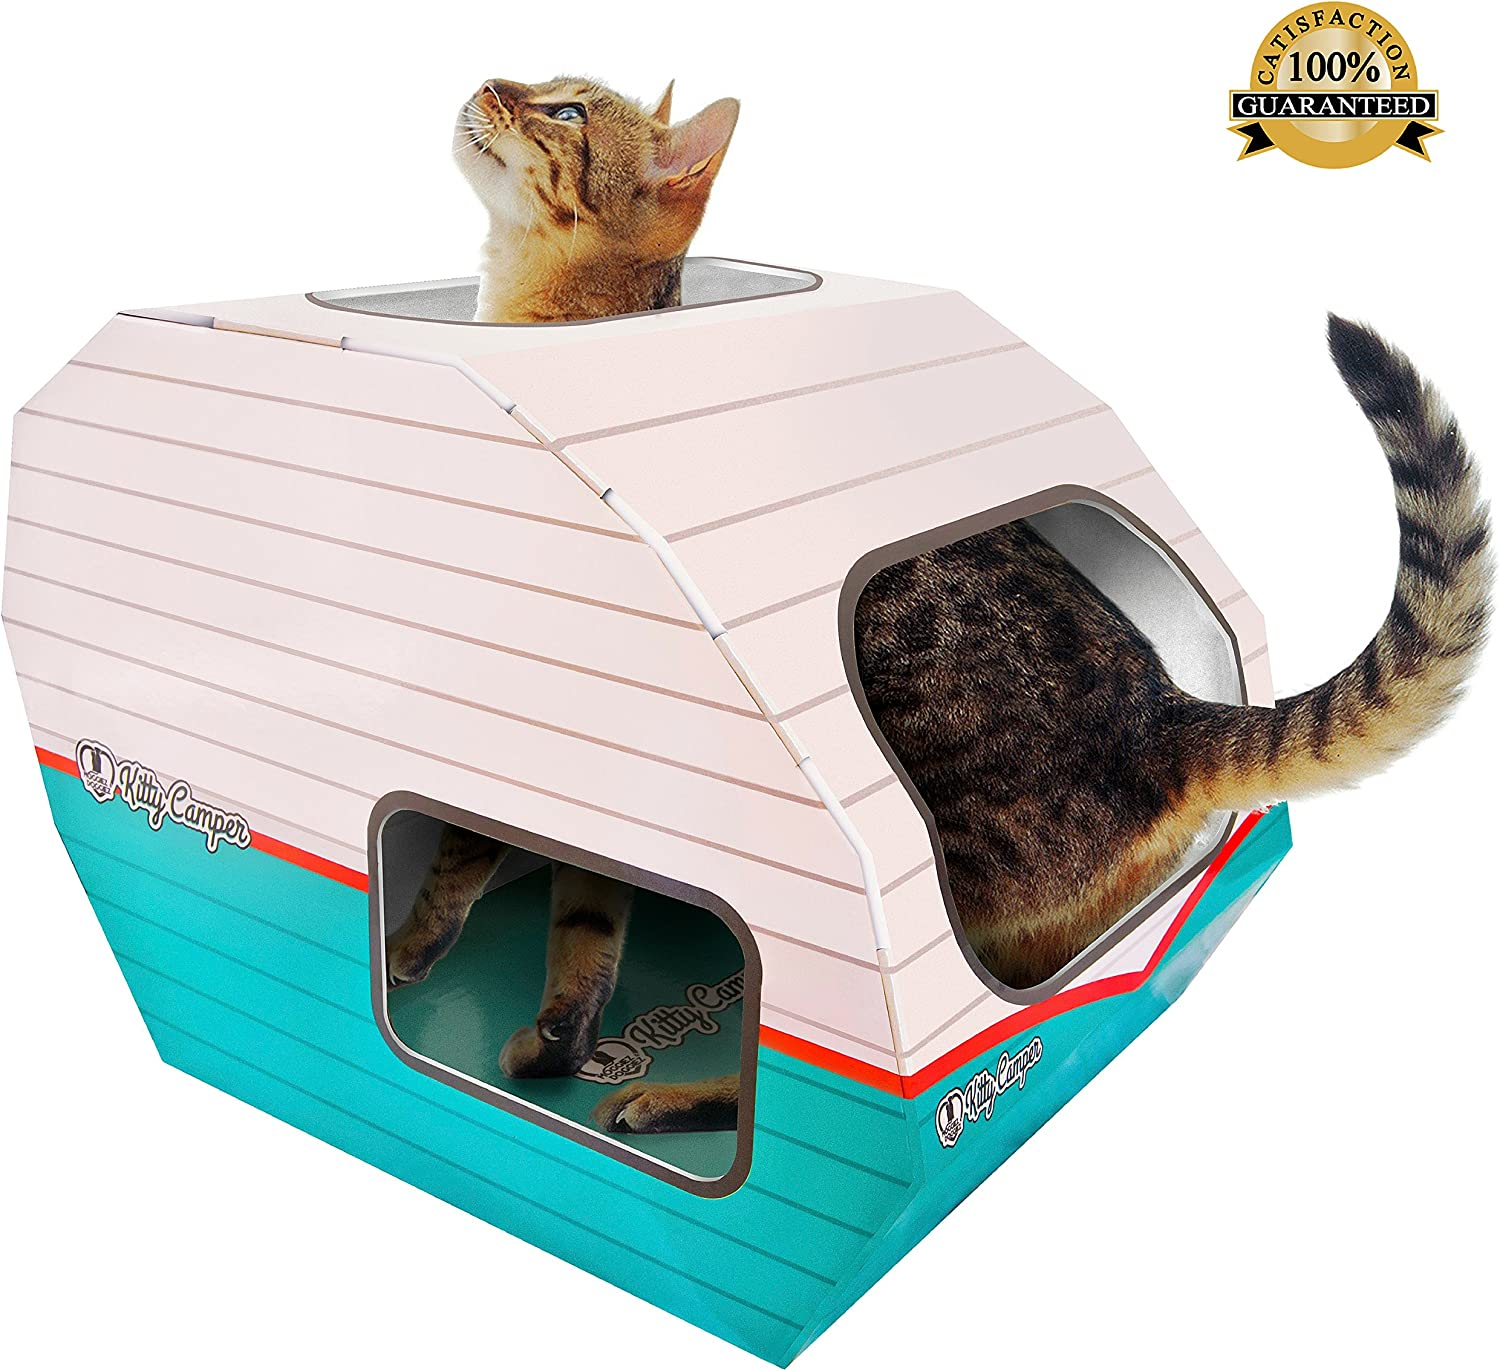 No 1 Rated Cat Toys Playhouse Best Indoor Cardboard Cat House Toy Now With Corrugated Scratching Post Base Free Mouse Feather Free Ebook Amazon Co Uk Pet Supplies